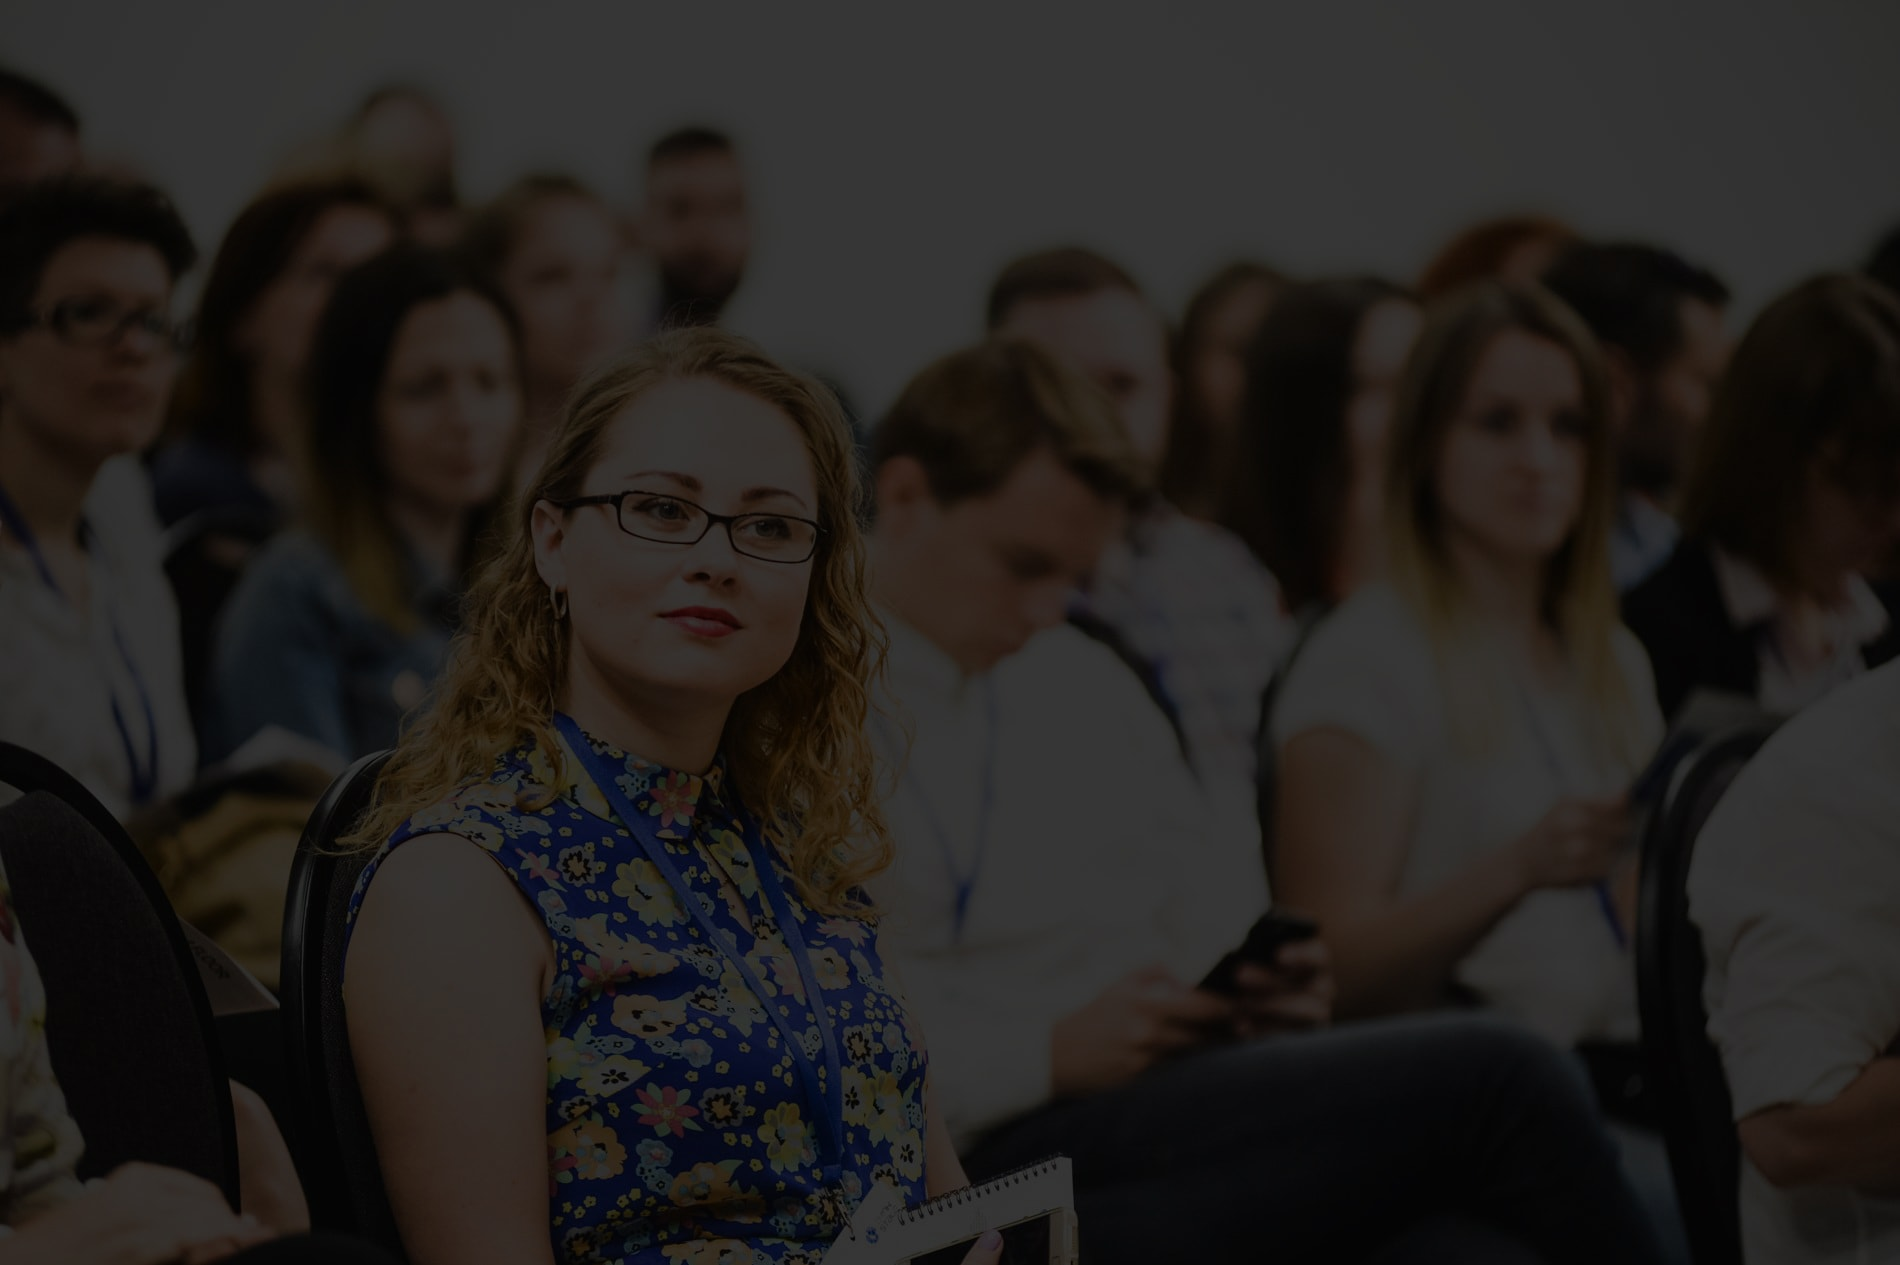 ThinkStage 2018: It's all about business and processes